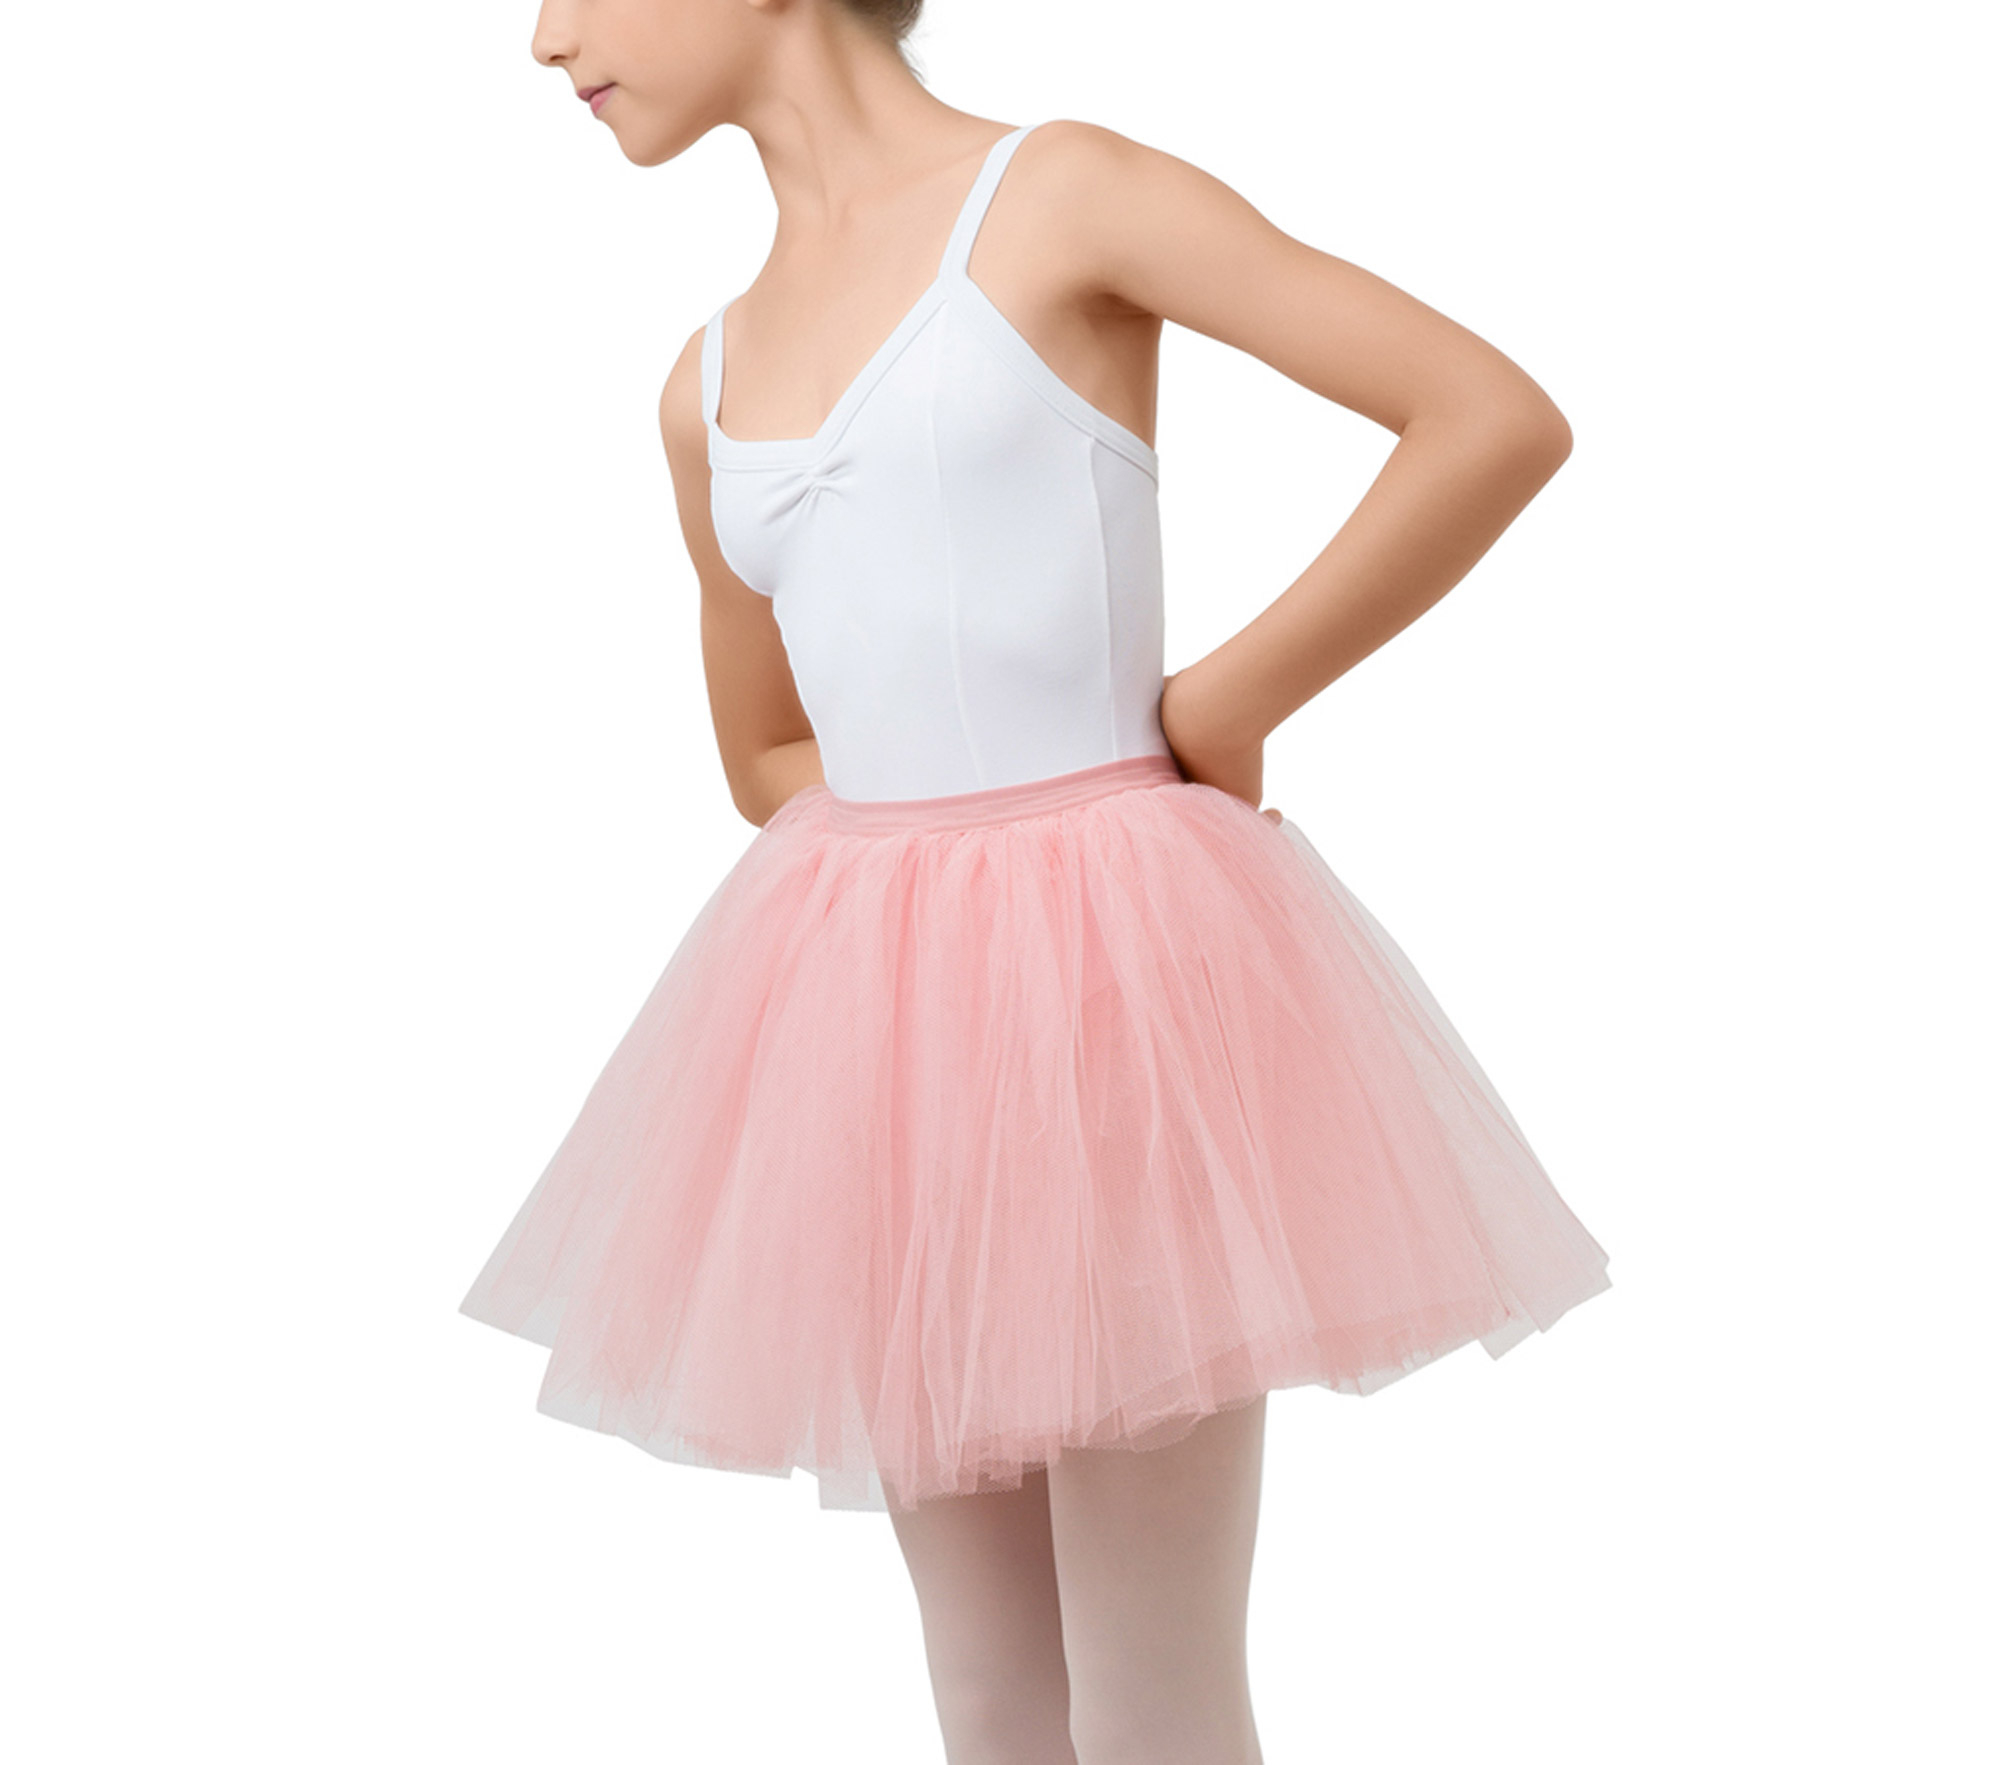 Short tulle skirt